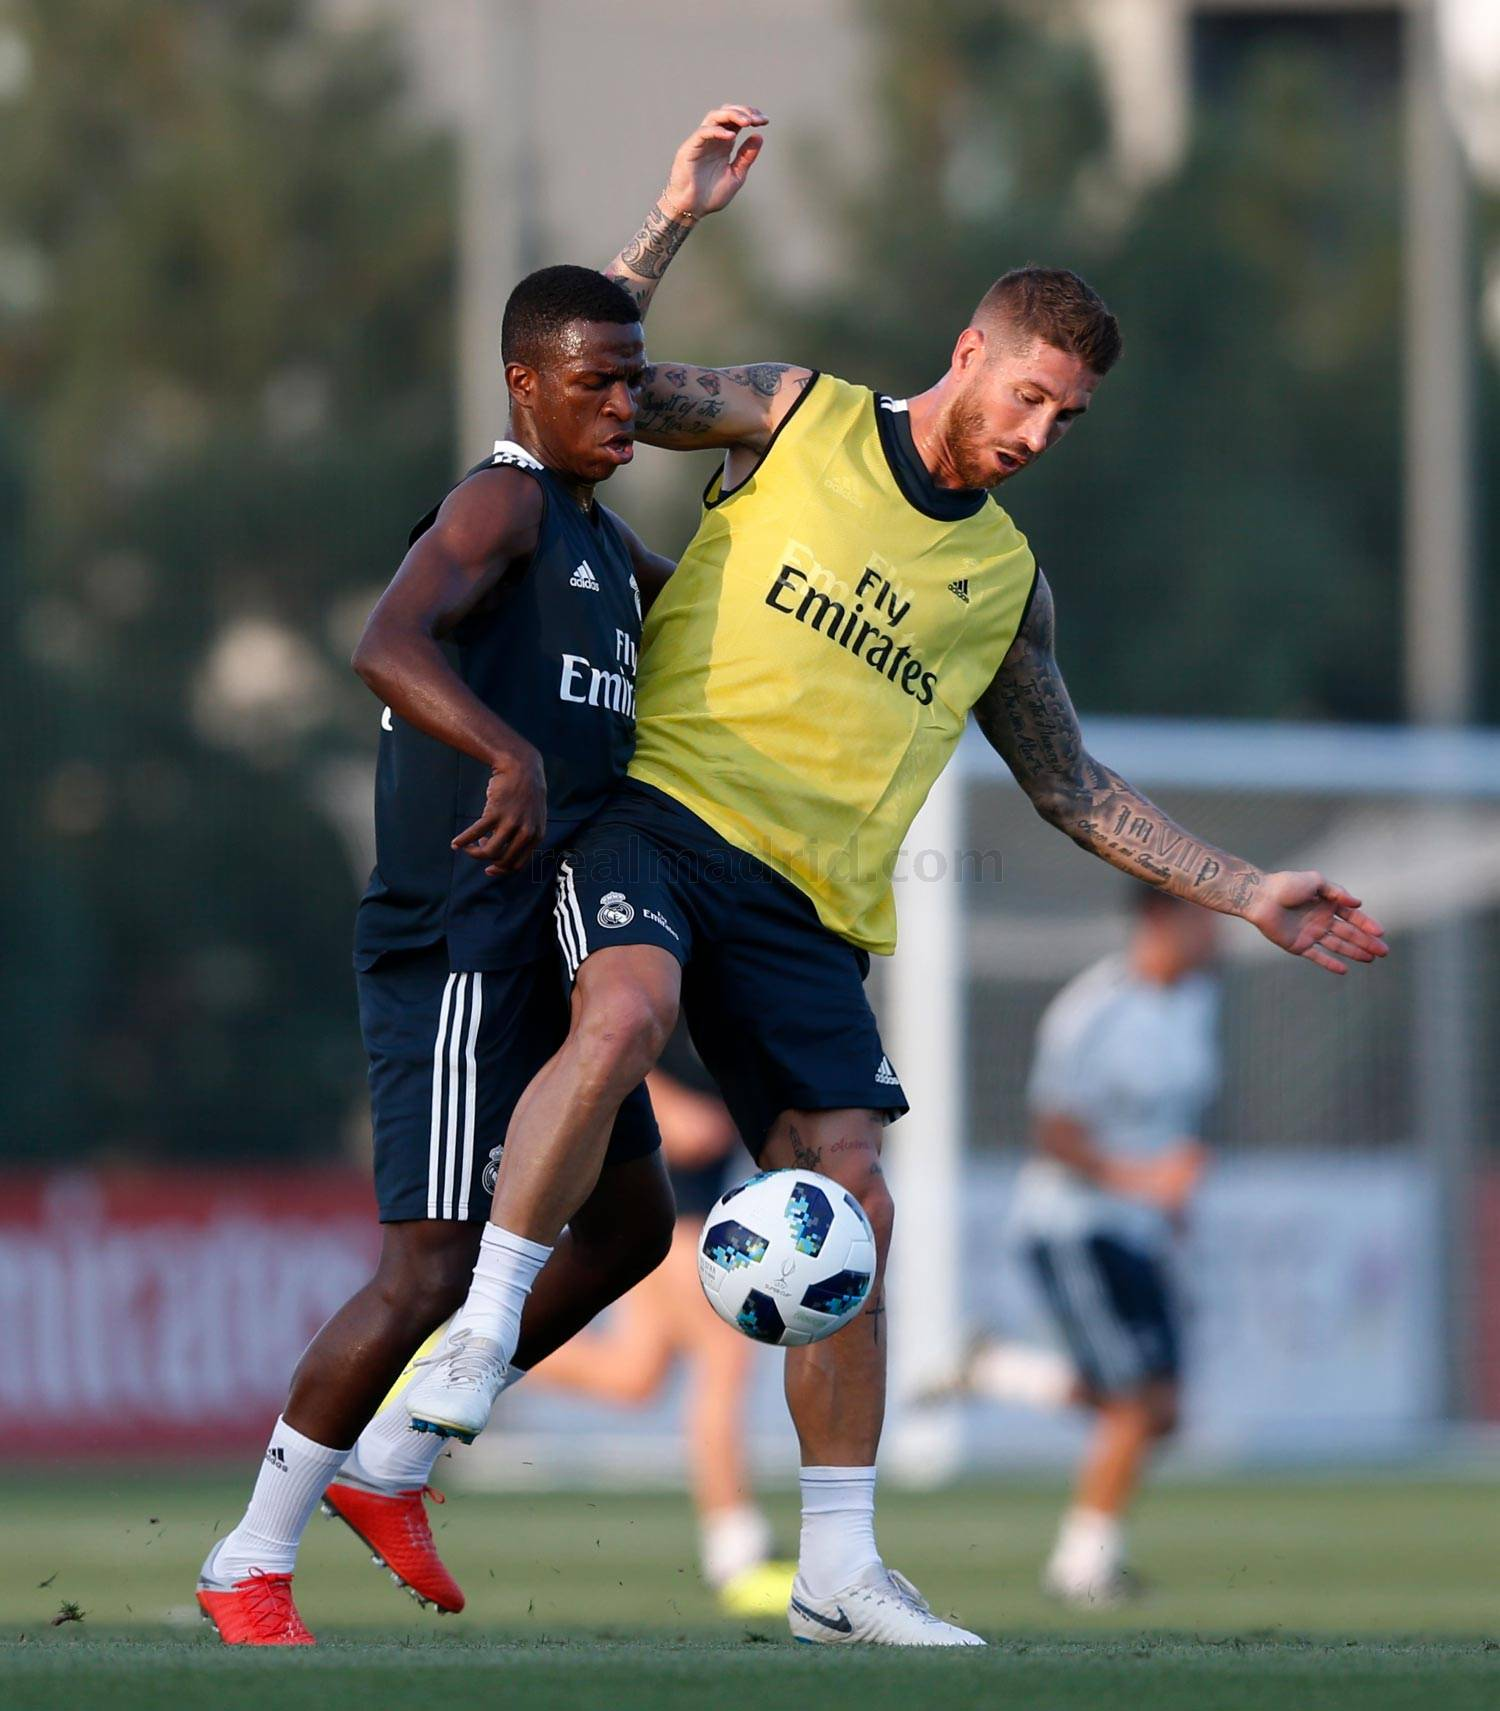 Real Madrid - Entrenamiento del Real Madrid - 09-08-2018